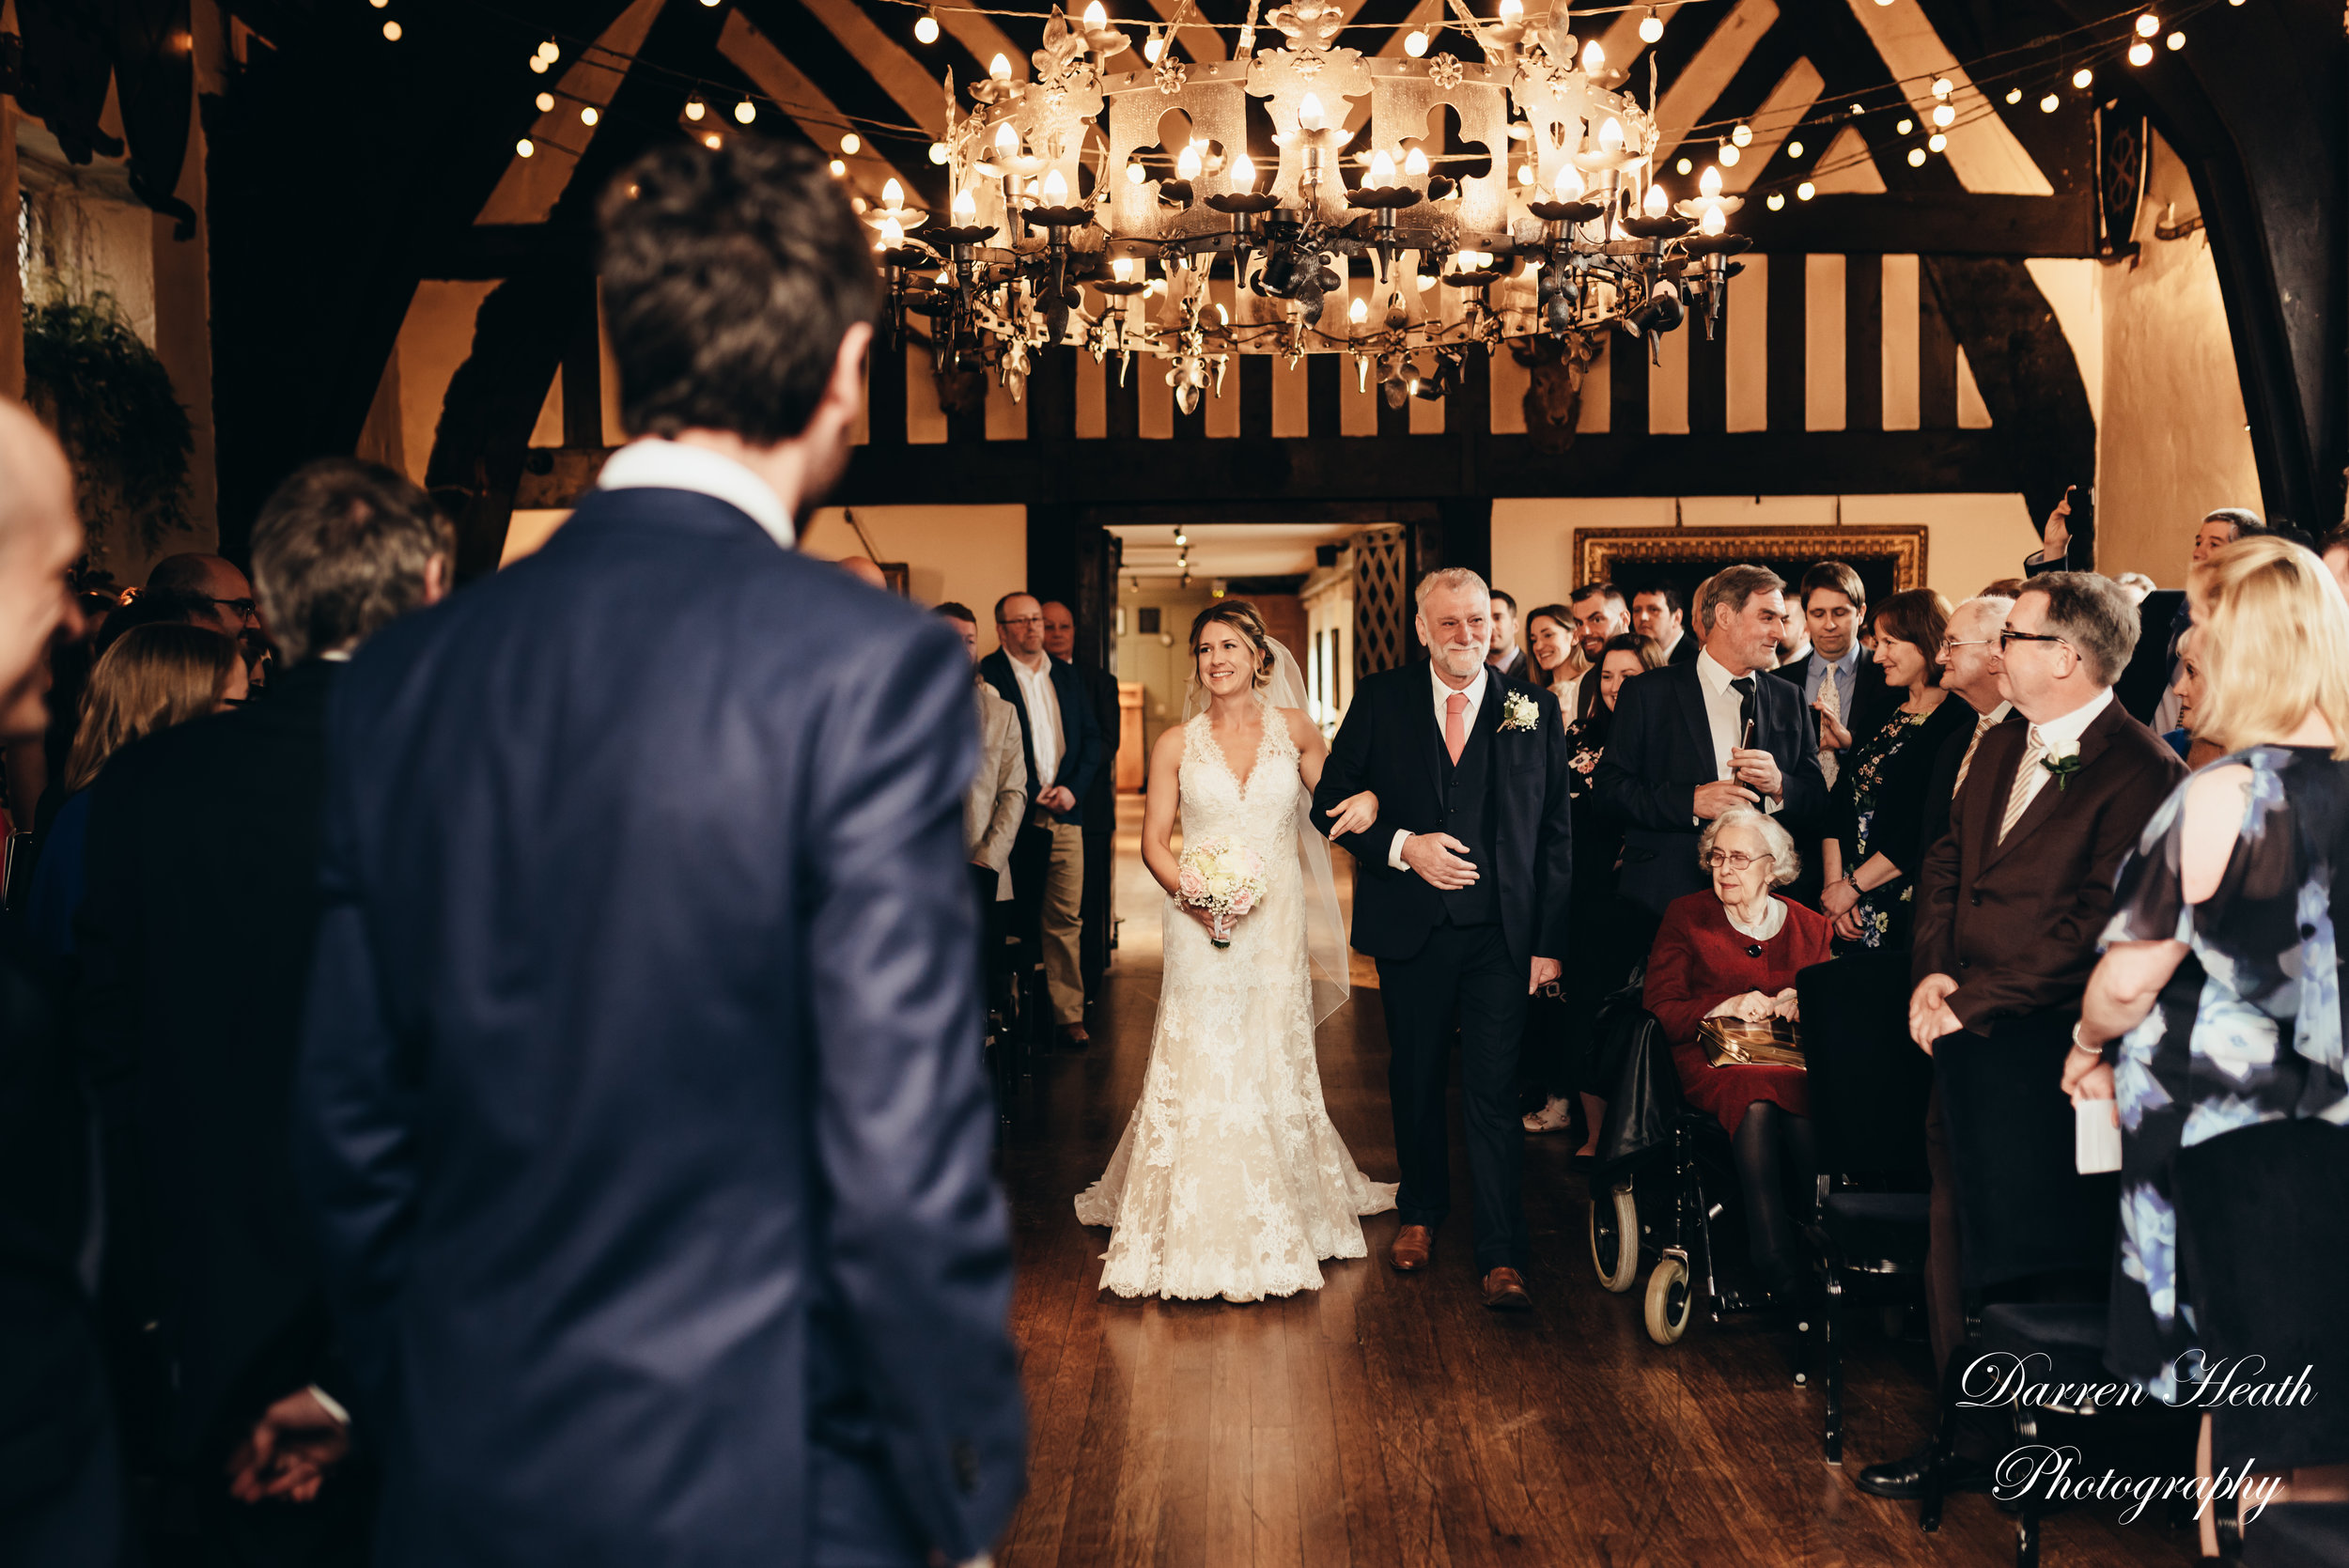 Bride walked down the aisle by proud father, as the groom watches